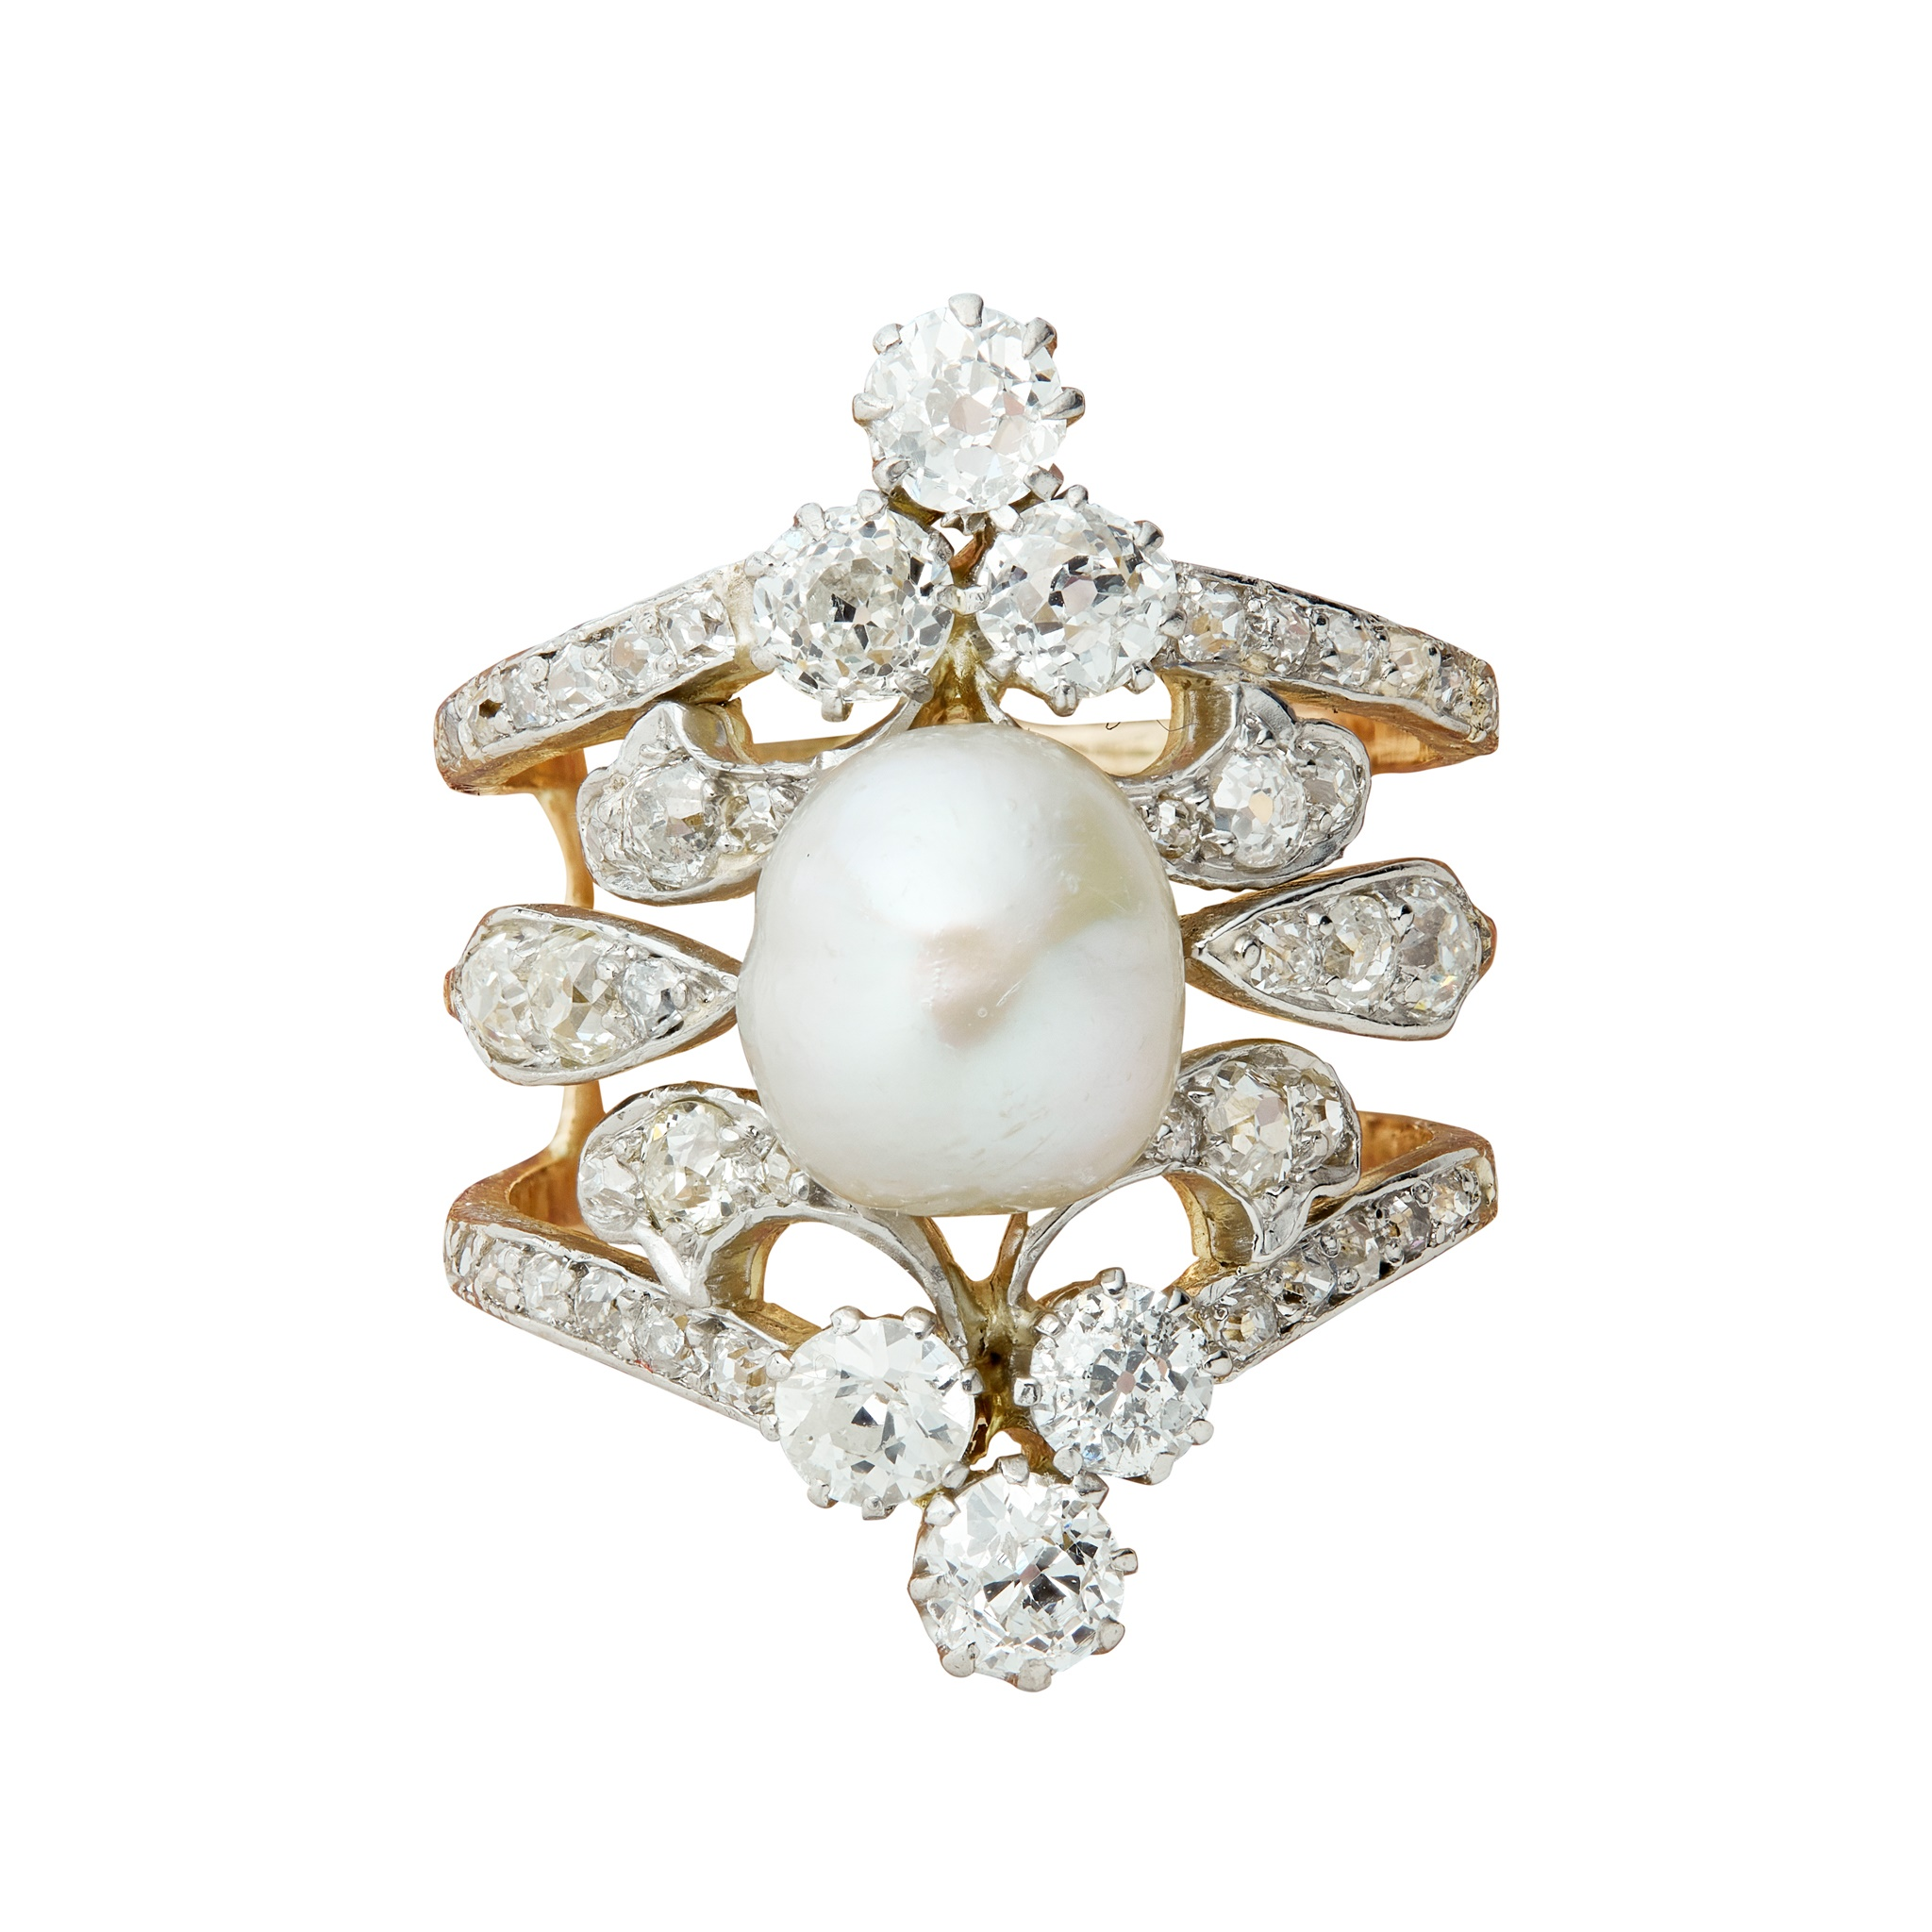 An early 20th century natural pearl and diamond ring The 8.73 x 7.87mm natural pearl mounted on a - Image 6 of 6